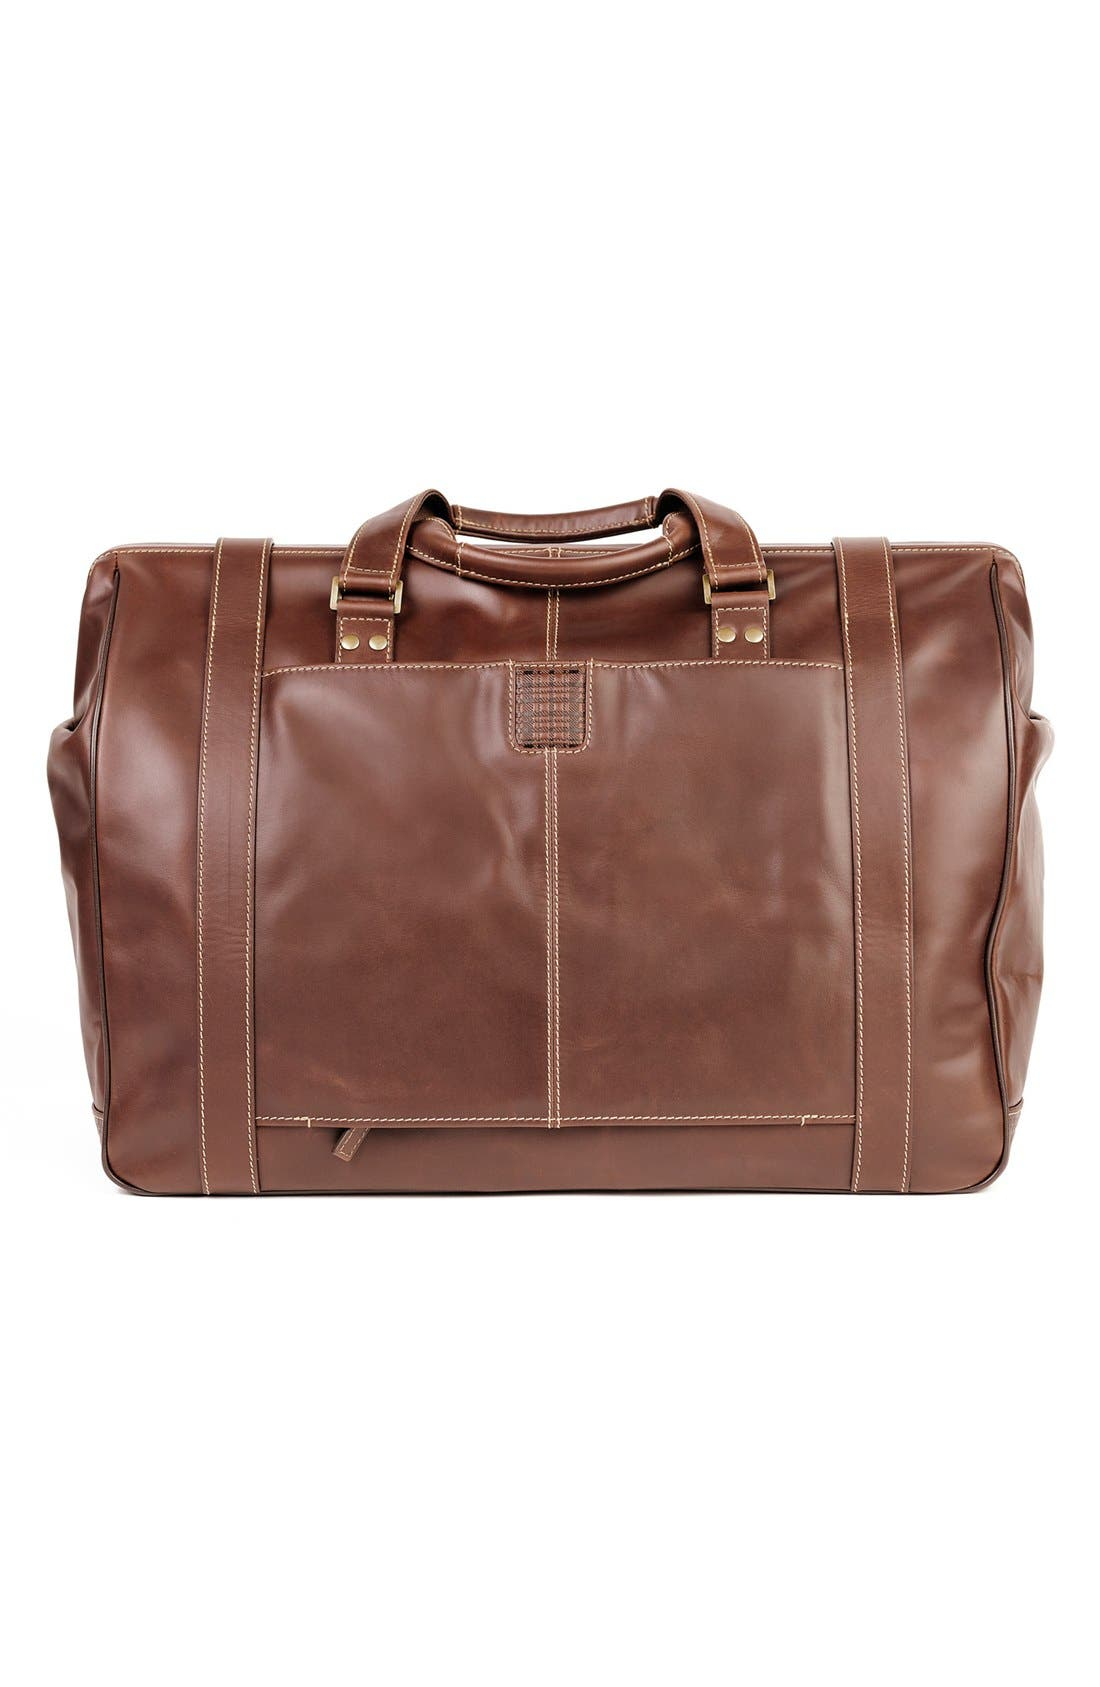 'Bryant' Duffel Bag,                             Alternate thumbnail 3, color,                             Antique Mahogany